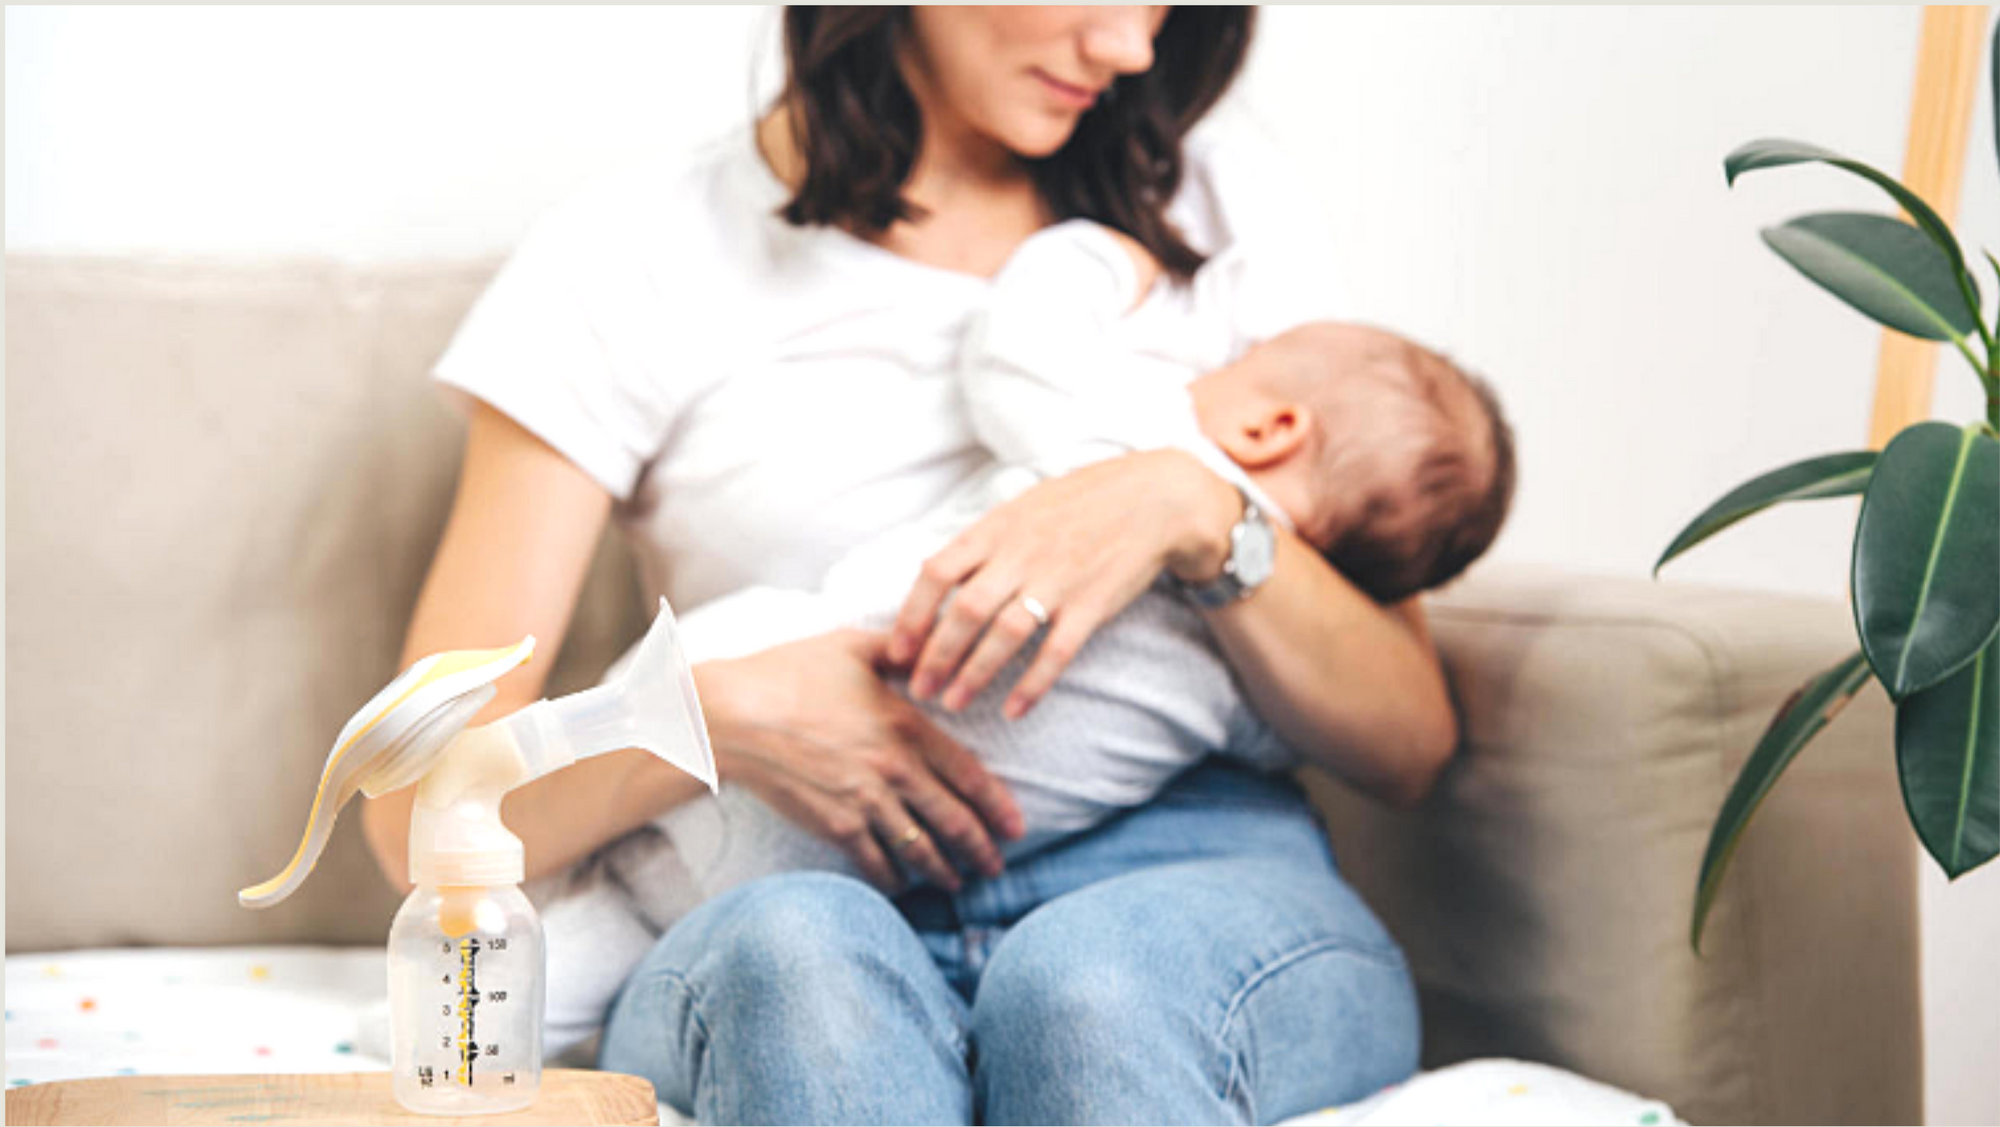 What To Know About Drinking Alcohol & Breastfeeding